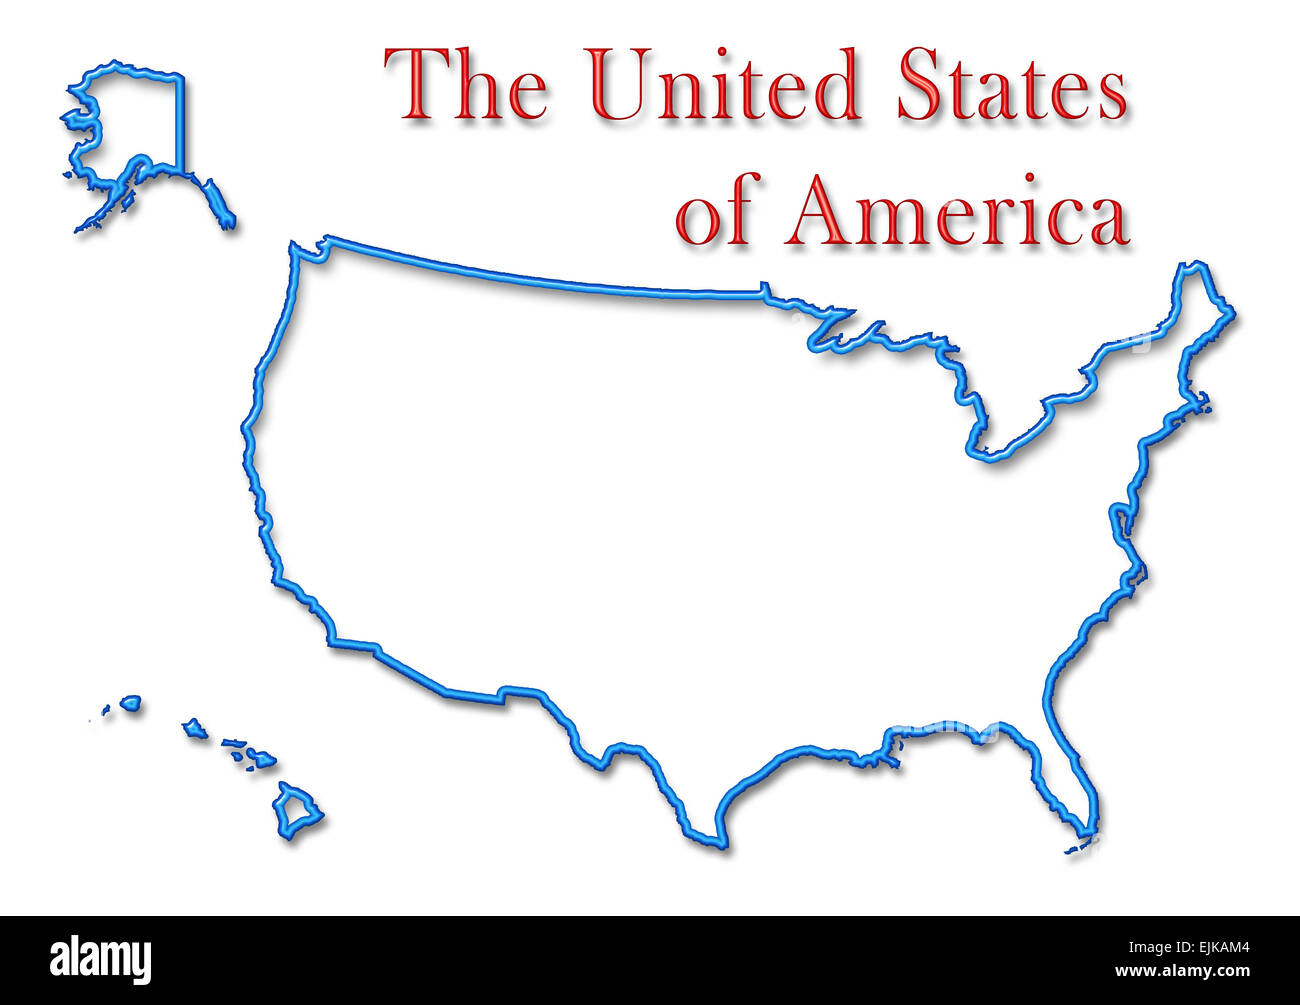 Us Map Blue Red States.The United States Of America Map With Neon Blue Outline And Red